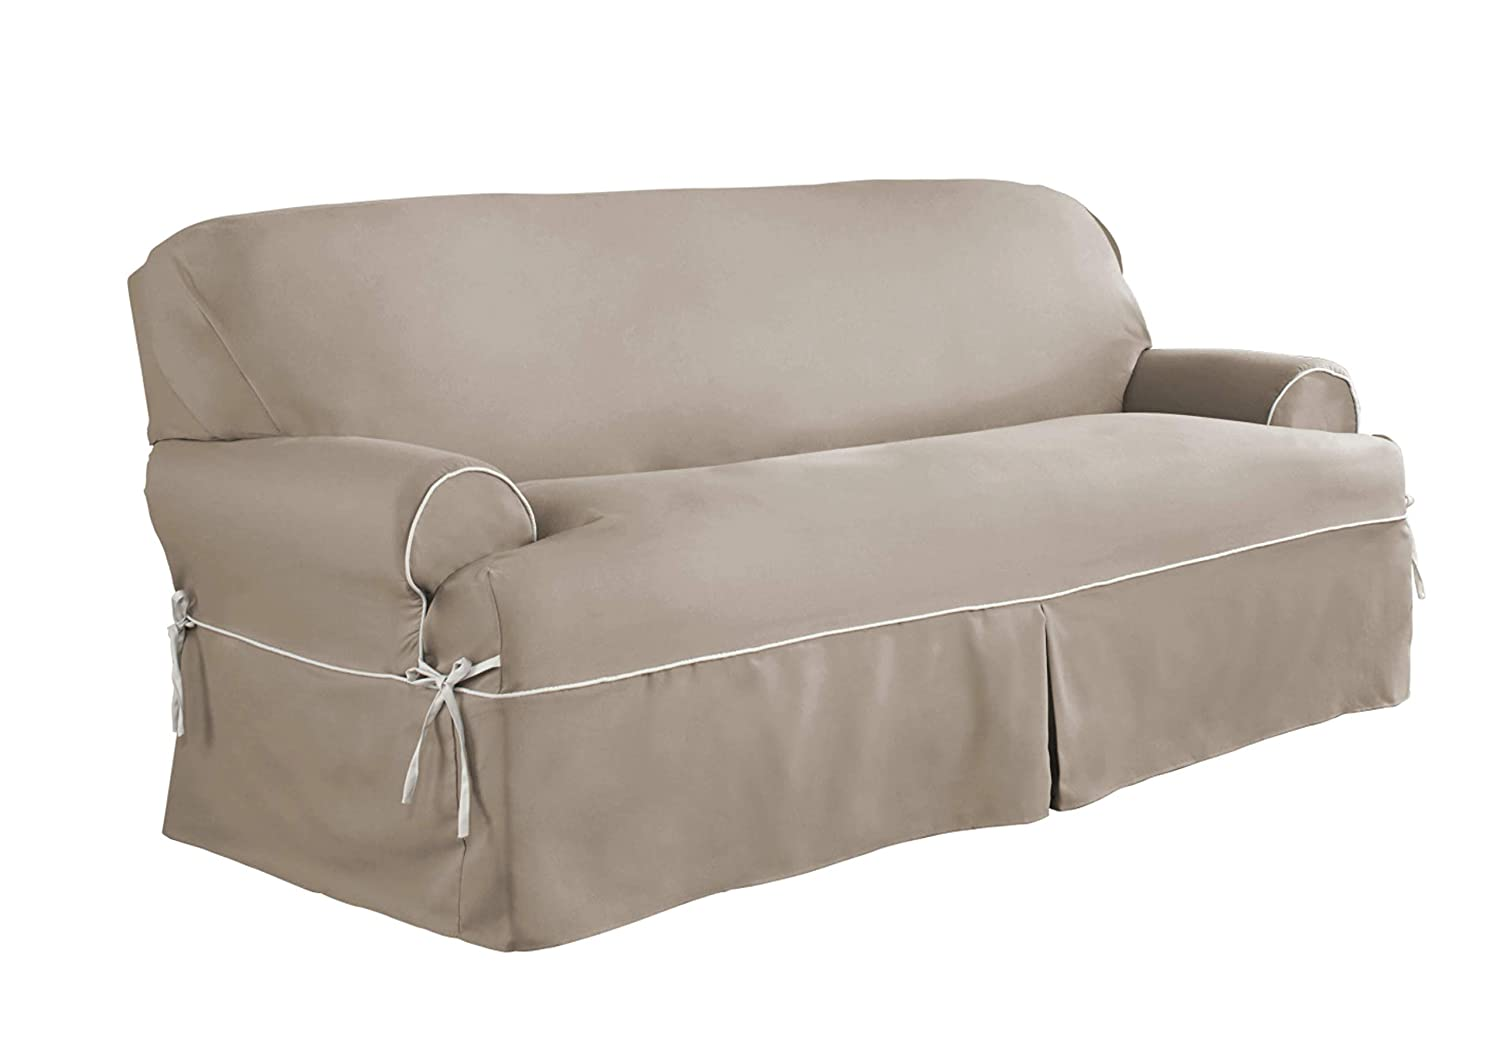 Serta | Relaxed Fit Durable Cotton Twill Canvas Furniture Slipcover, Reversible Fabric (T-Chair, Taupe/Ivory) 038533834472